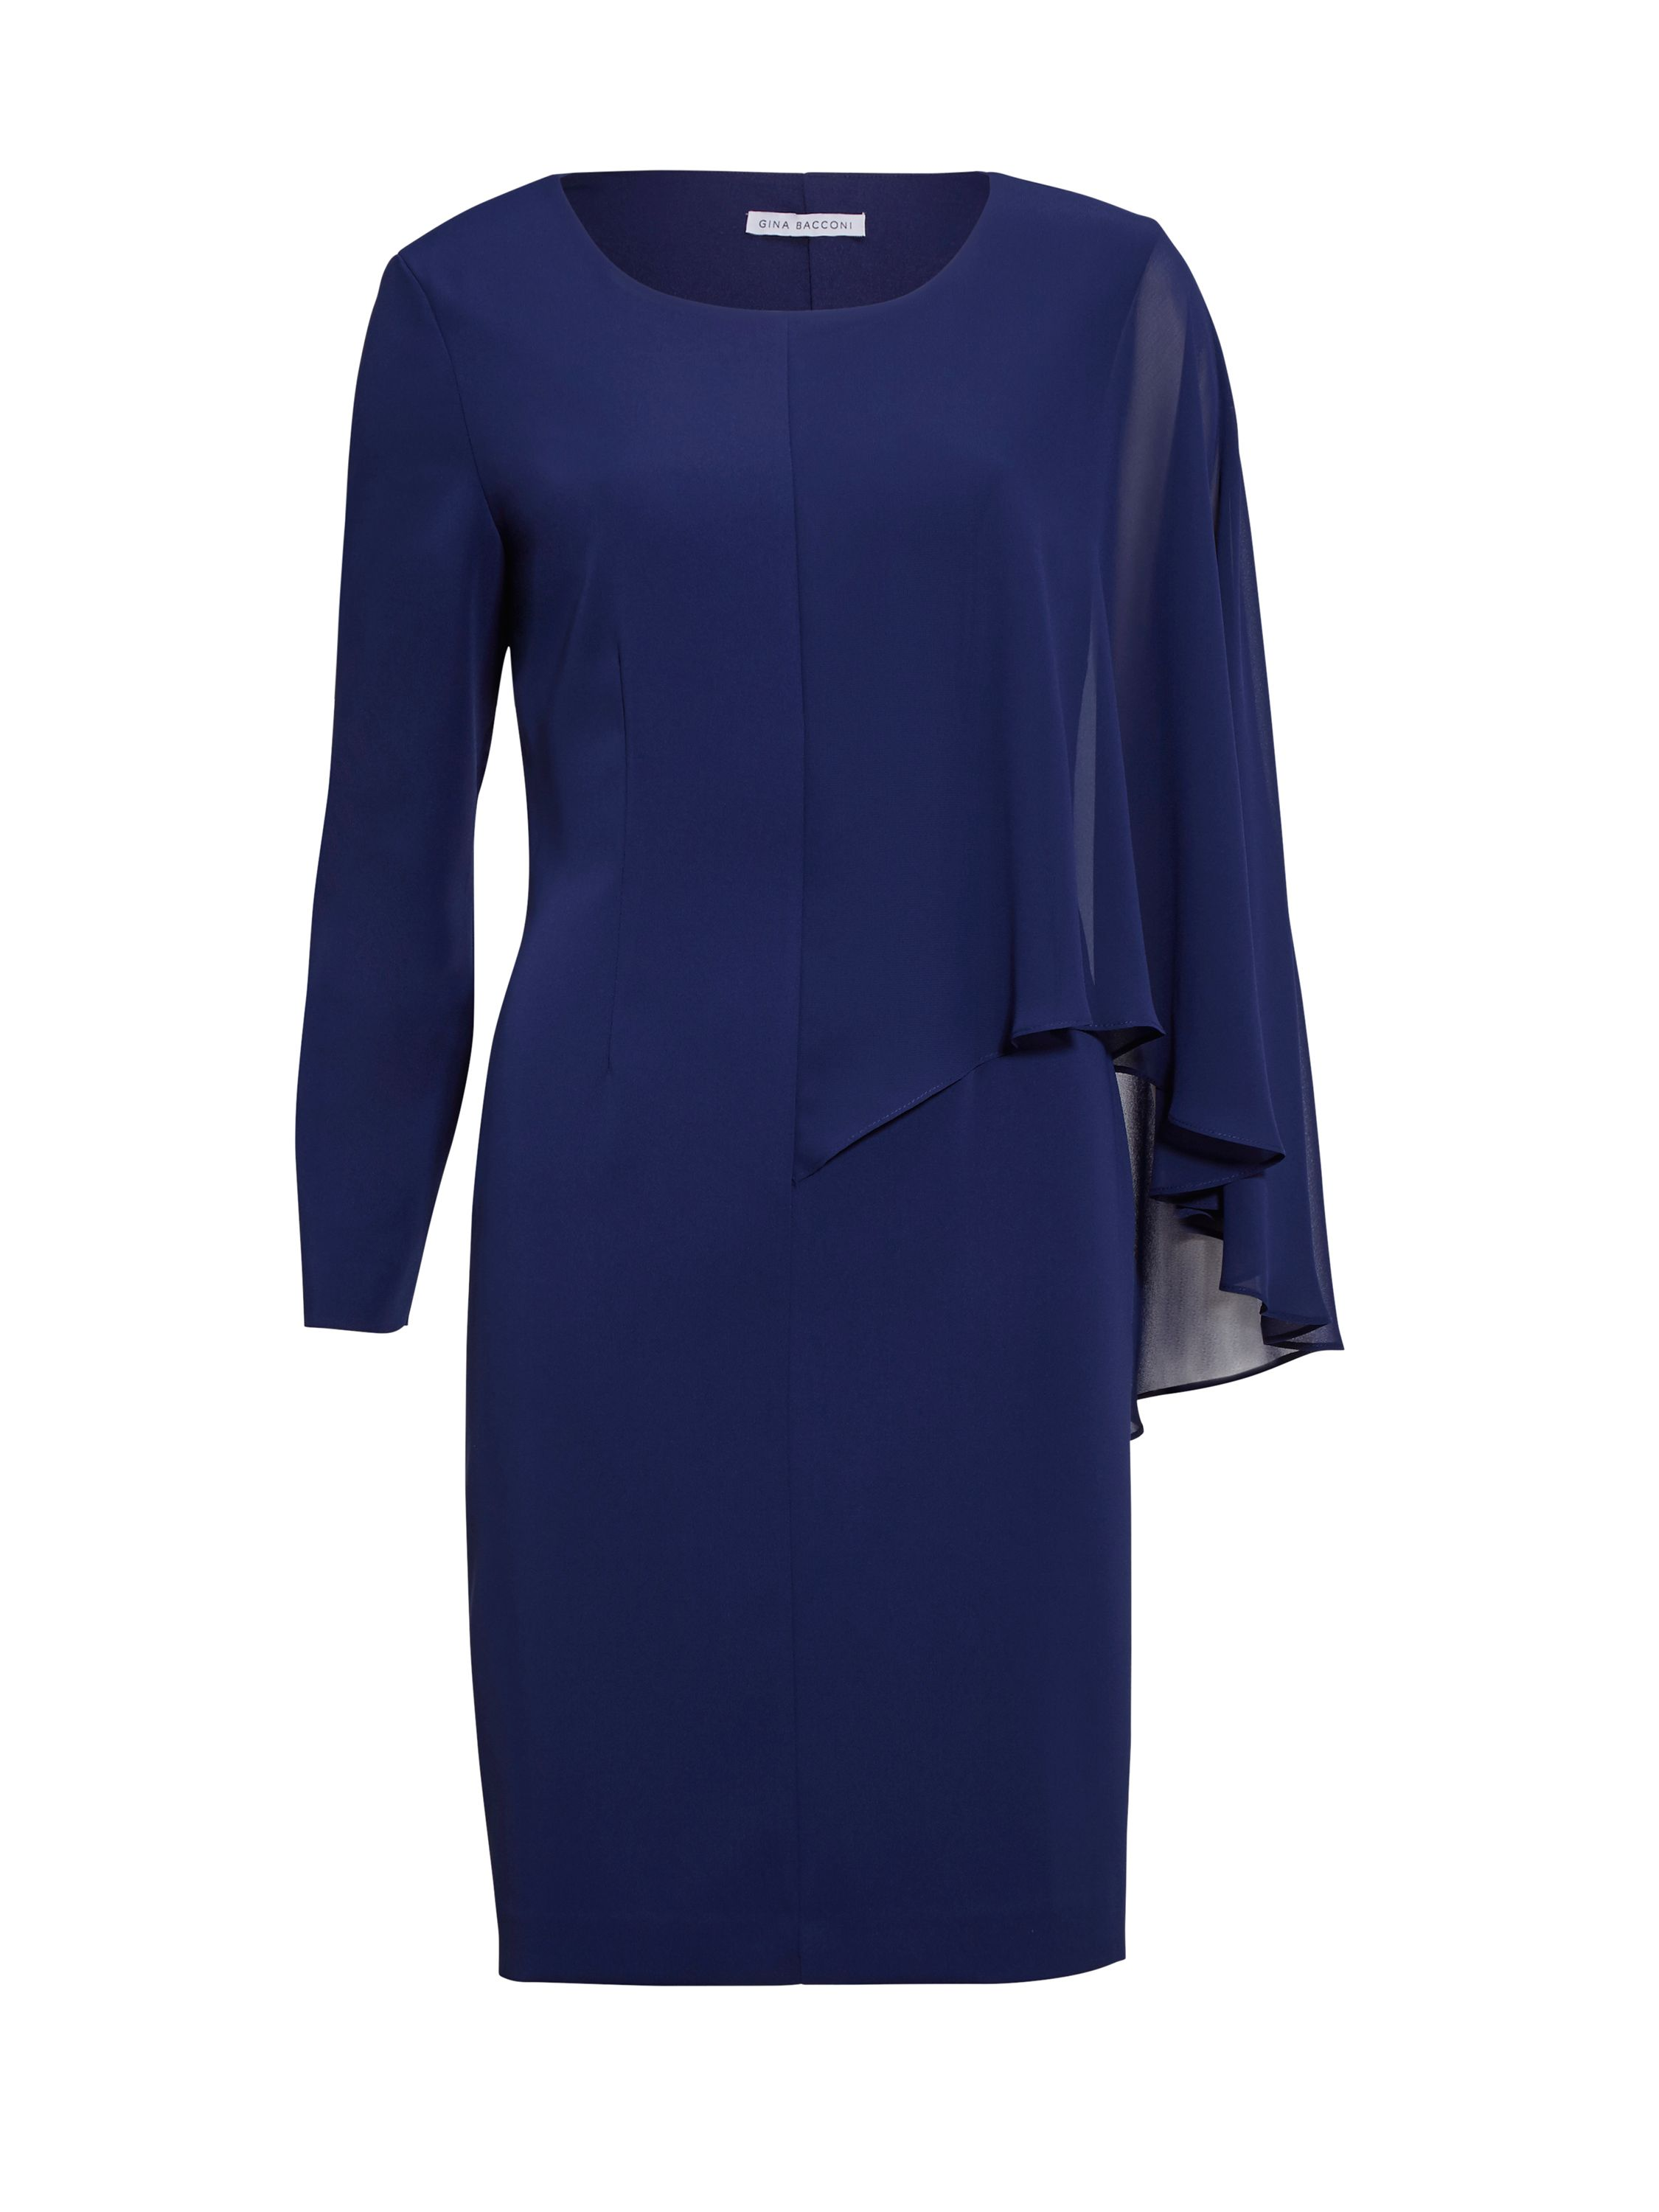 Gina Bacconi Moss Crepe And Chiffon Dress, Blue